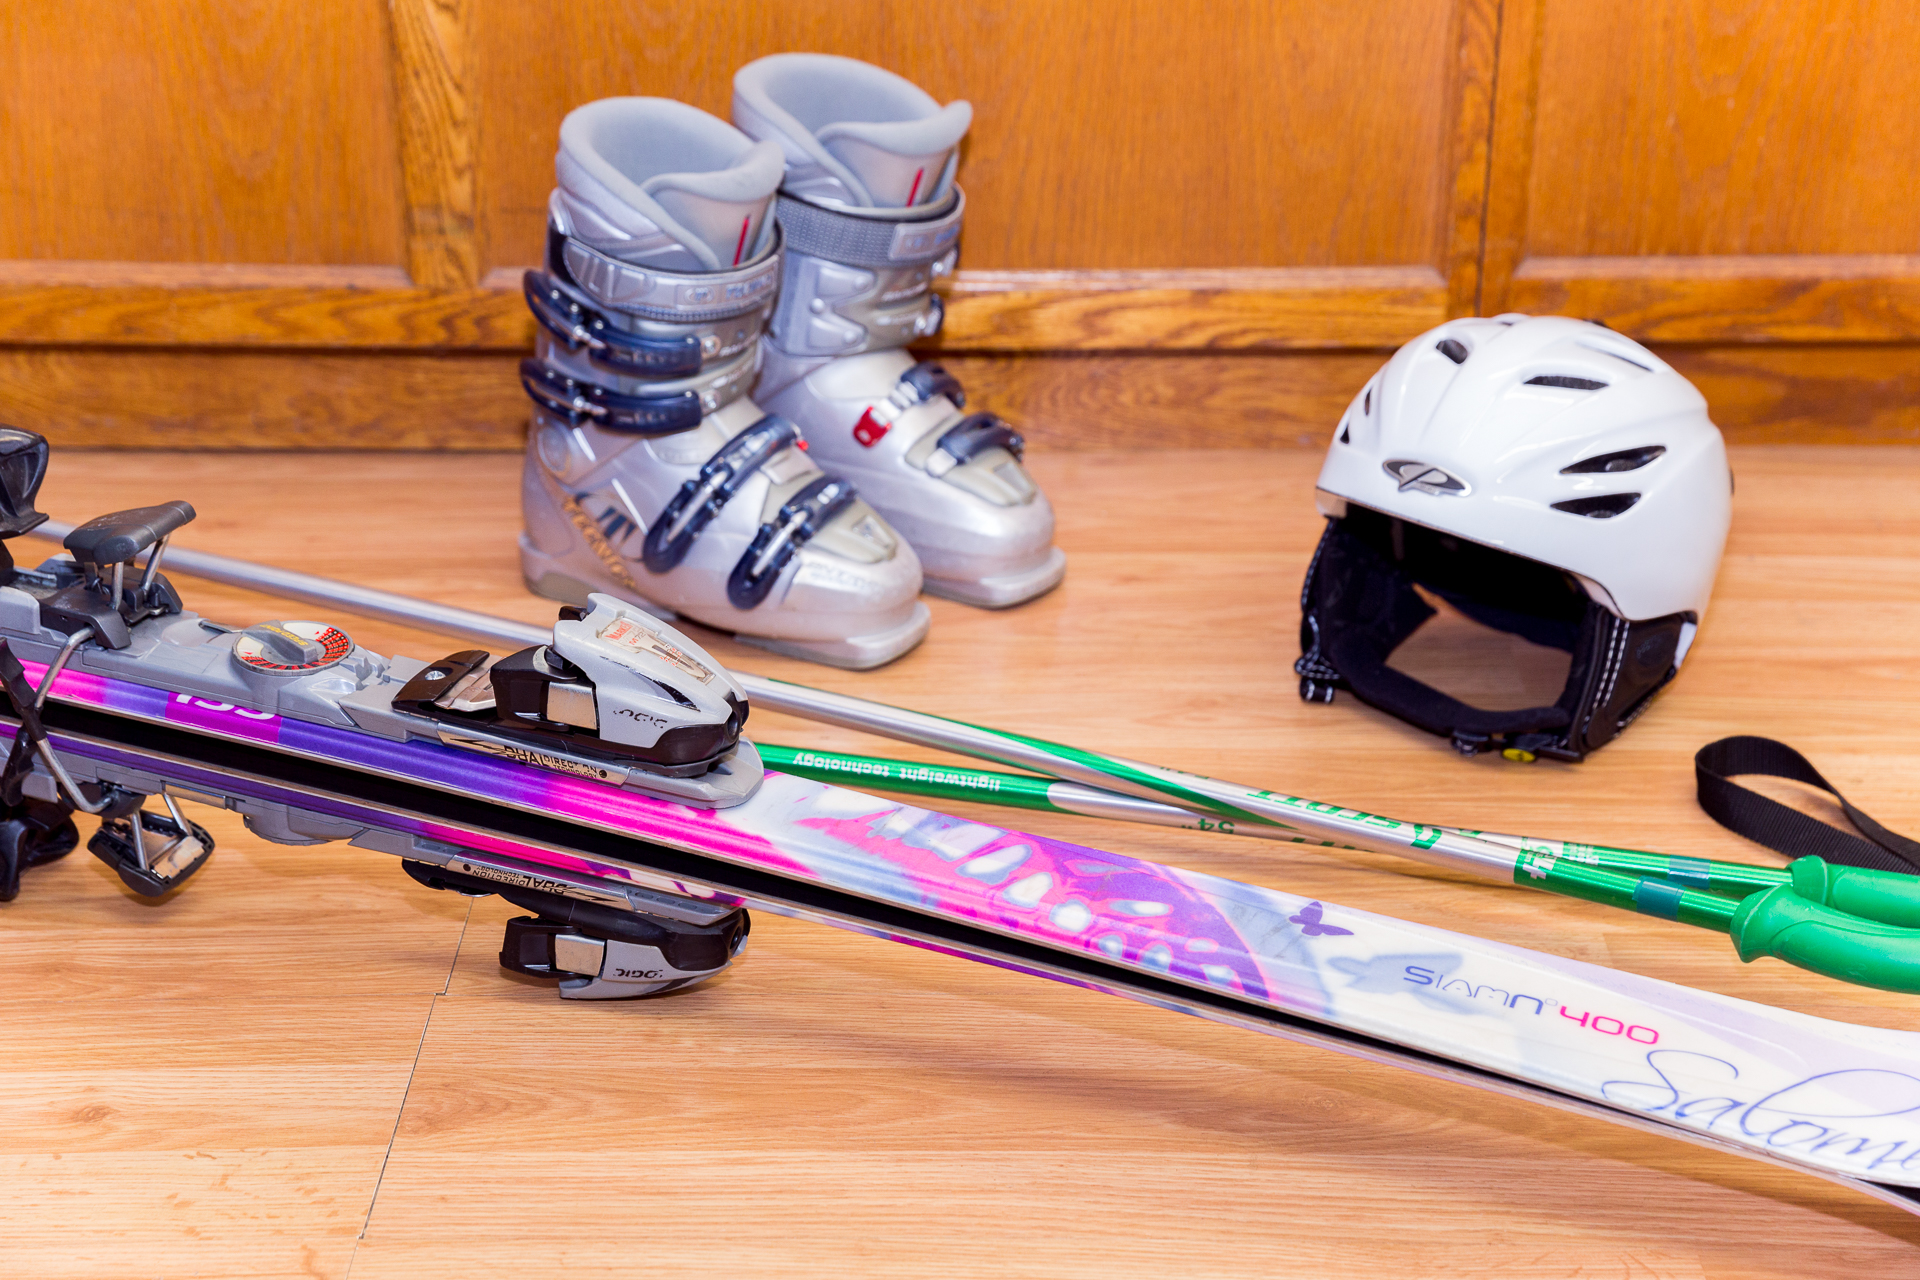 PERFORMANCE SKI & SNOWBOARD PACKAGE - 140CM - 180CM  // Performance Skis ranging from Atomic, K2, Salomon, & Volkl // Performance Snowboards ranging from Burton, Head, Morrow, Sol, & LTD   RATES : // We do not charge for the day you pick up or return. Free travel days! // Helmets are an additional $7 for the first day & $3 every day after that. 1 DAY - $34.99 2 DAY - $49.99 3 DAY - $64.99 EXTRA DAYS - $15.00 (Per Day) SEASON - $249.99 Adult Package picked up prior to January 1, 2019 SEASON - $199.99 Adult Package picked up after January 1, 2019